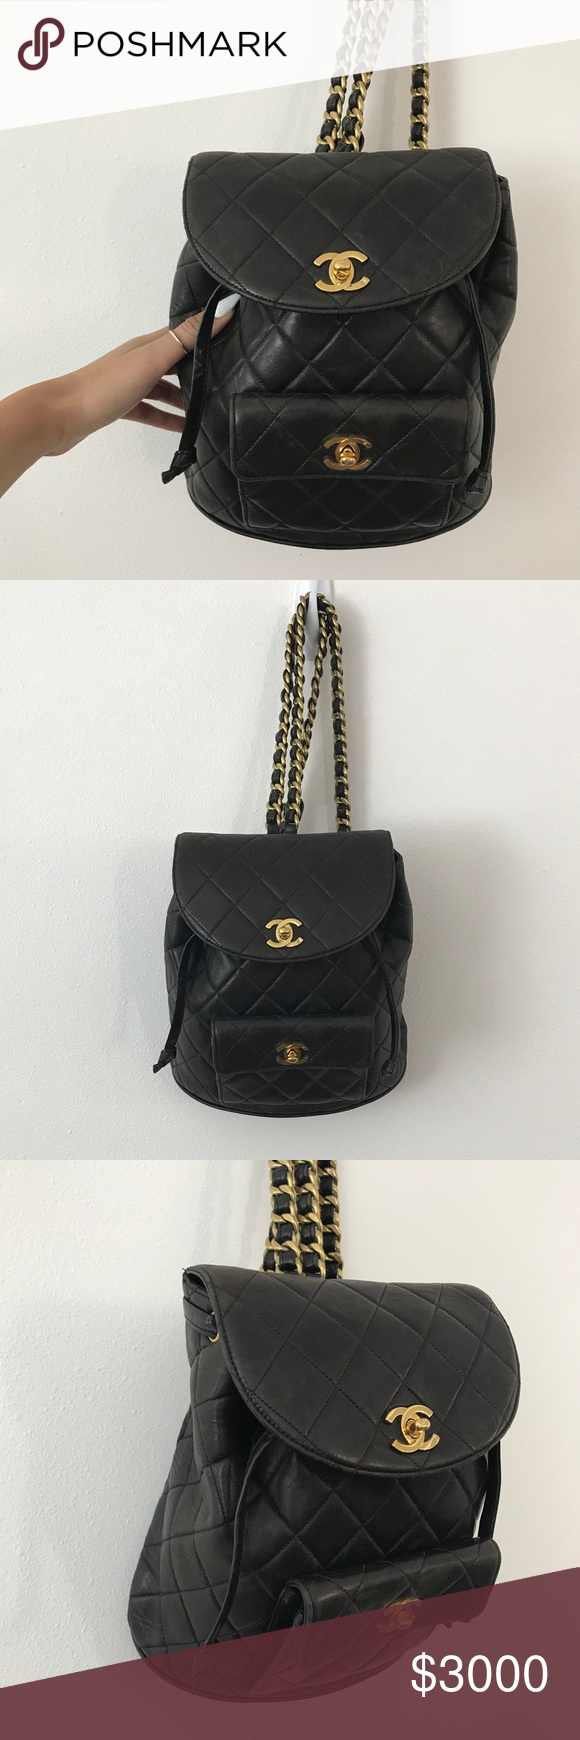 Vintage Chanel backpack quilted gold cc bag purse Vintage Chanel black  quilted cc gold lambskin backpack bag purse. Authentic Chanel. Lambskin  leather. 4c34d599b172c